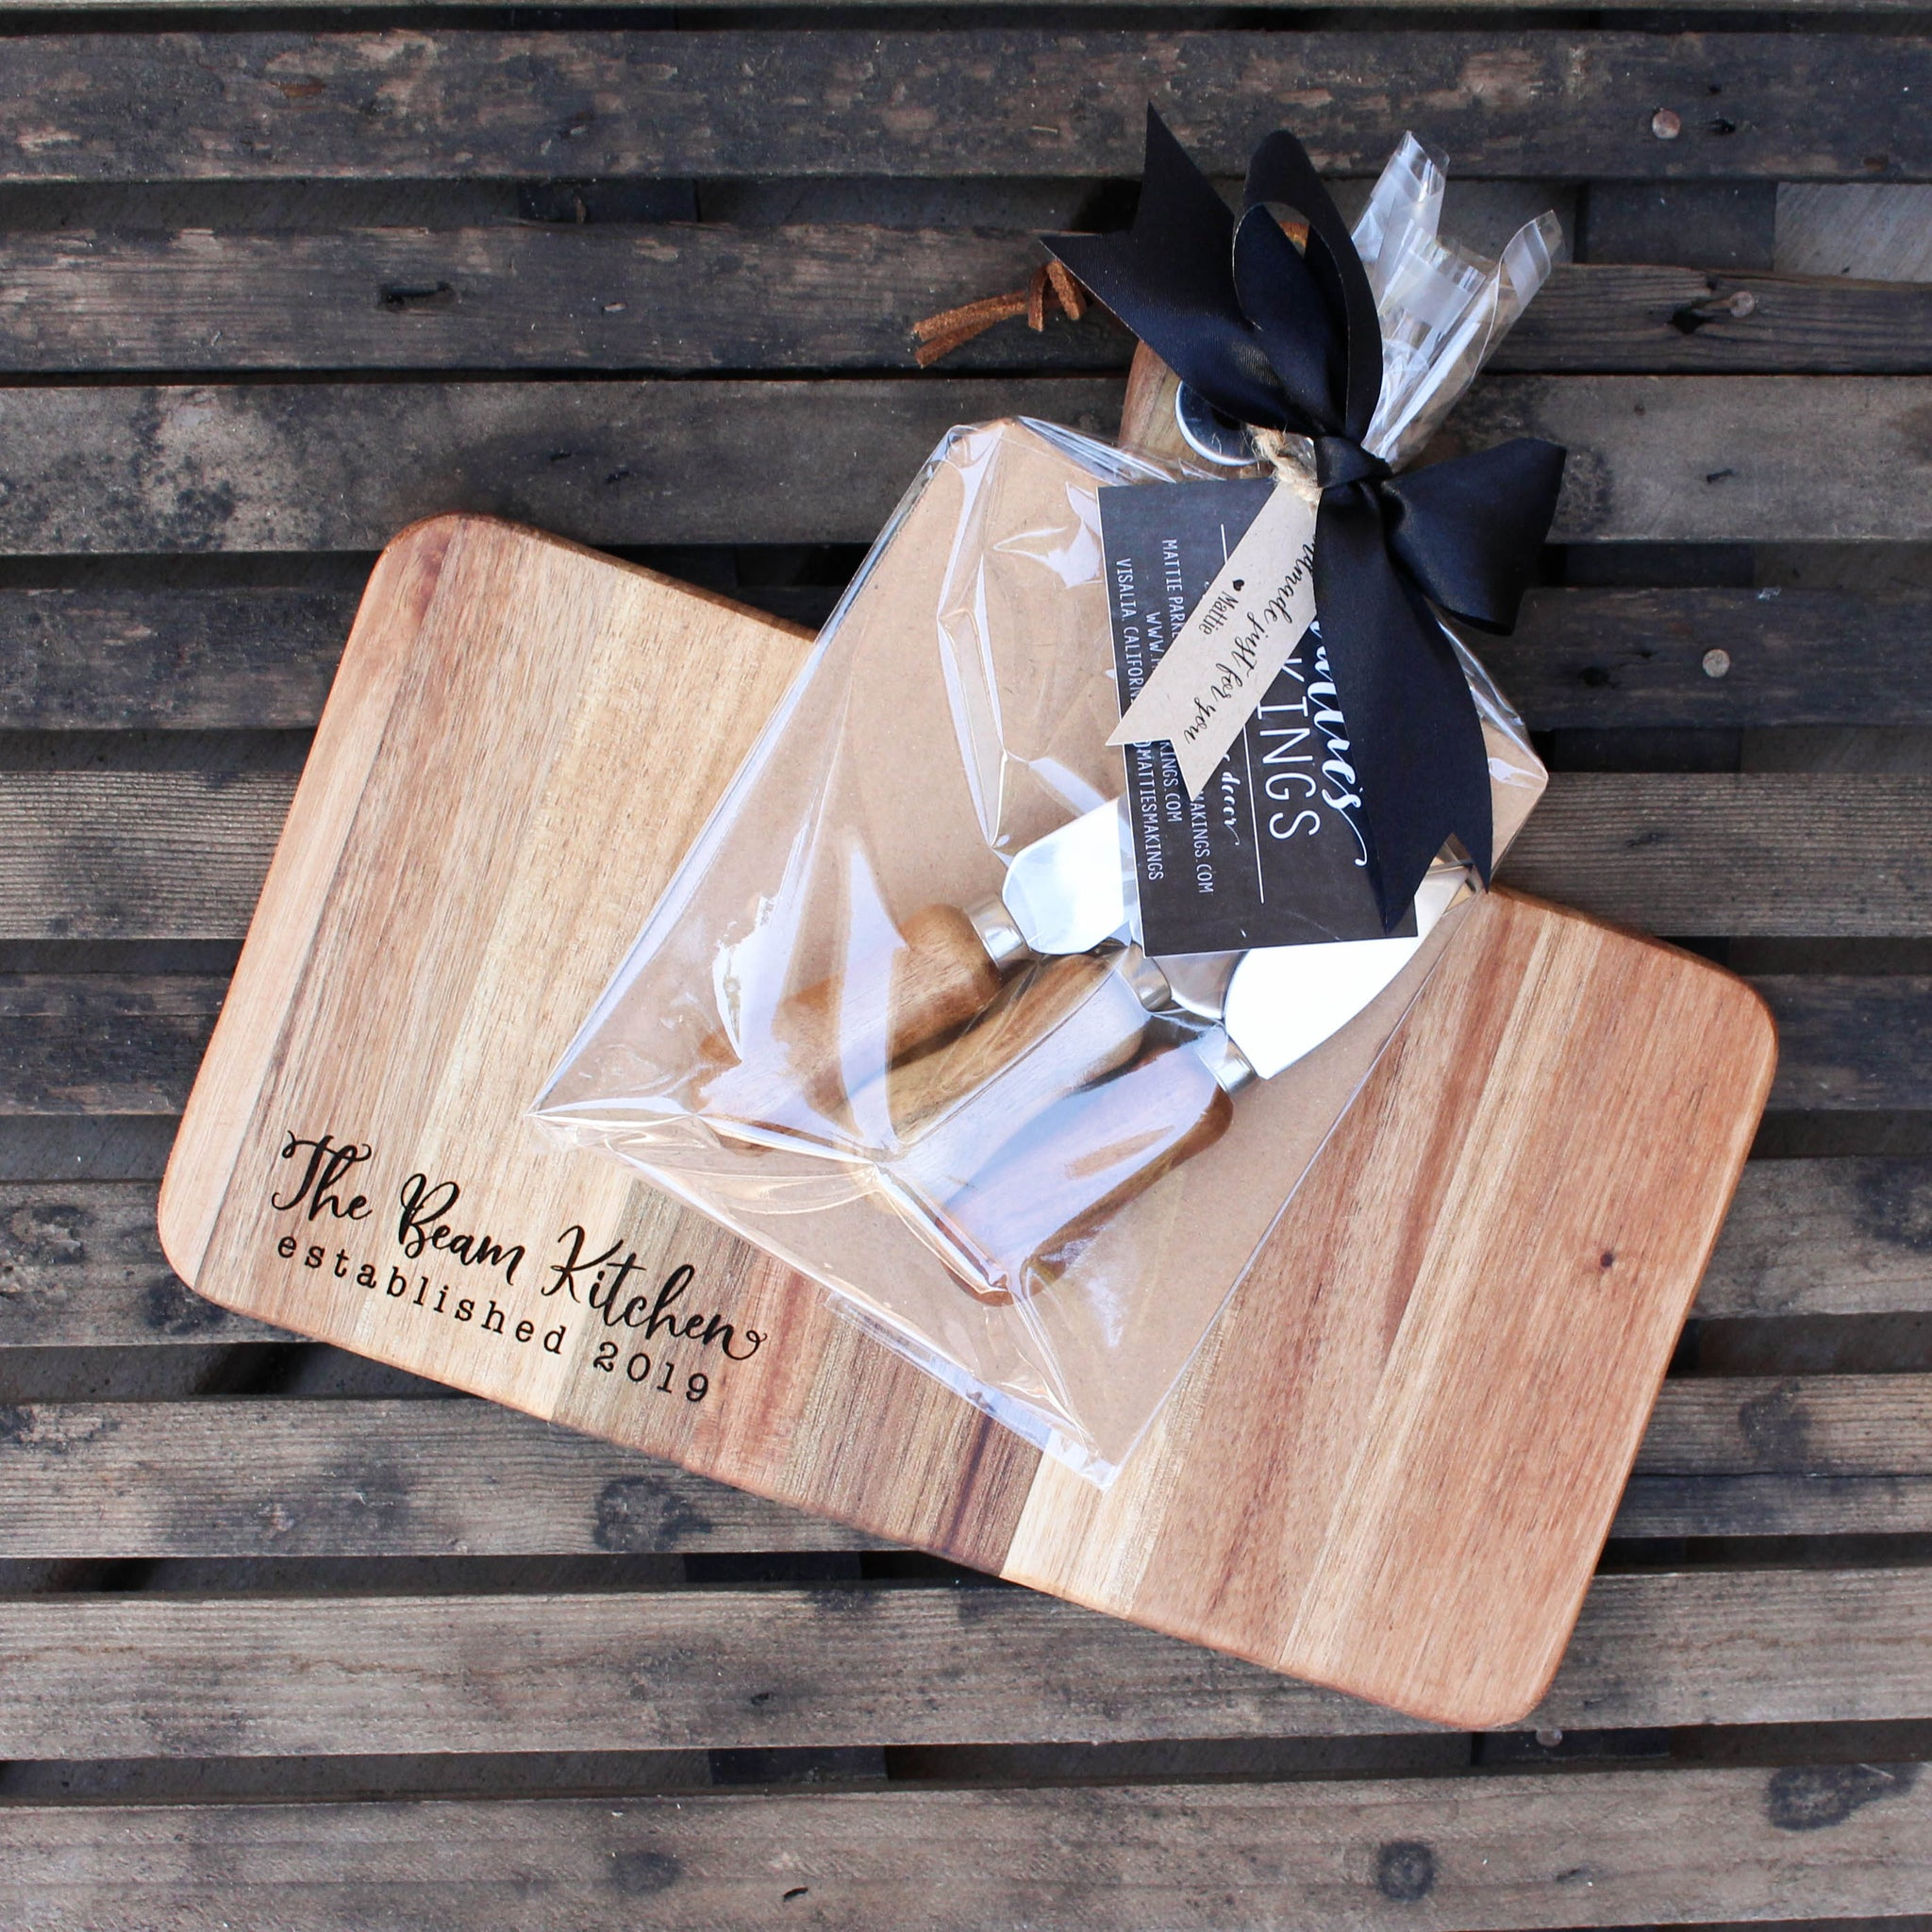 Cheese Board + Knife Set // Personalized // FREE SHIPPING